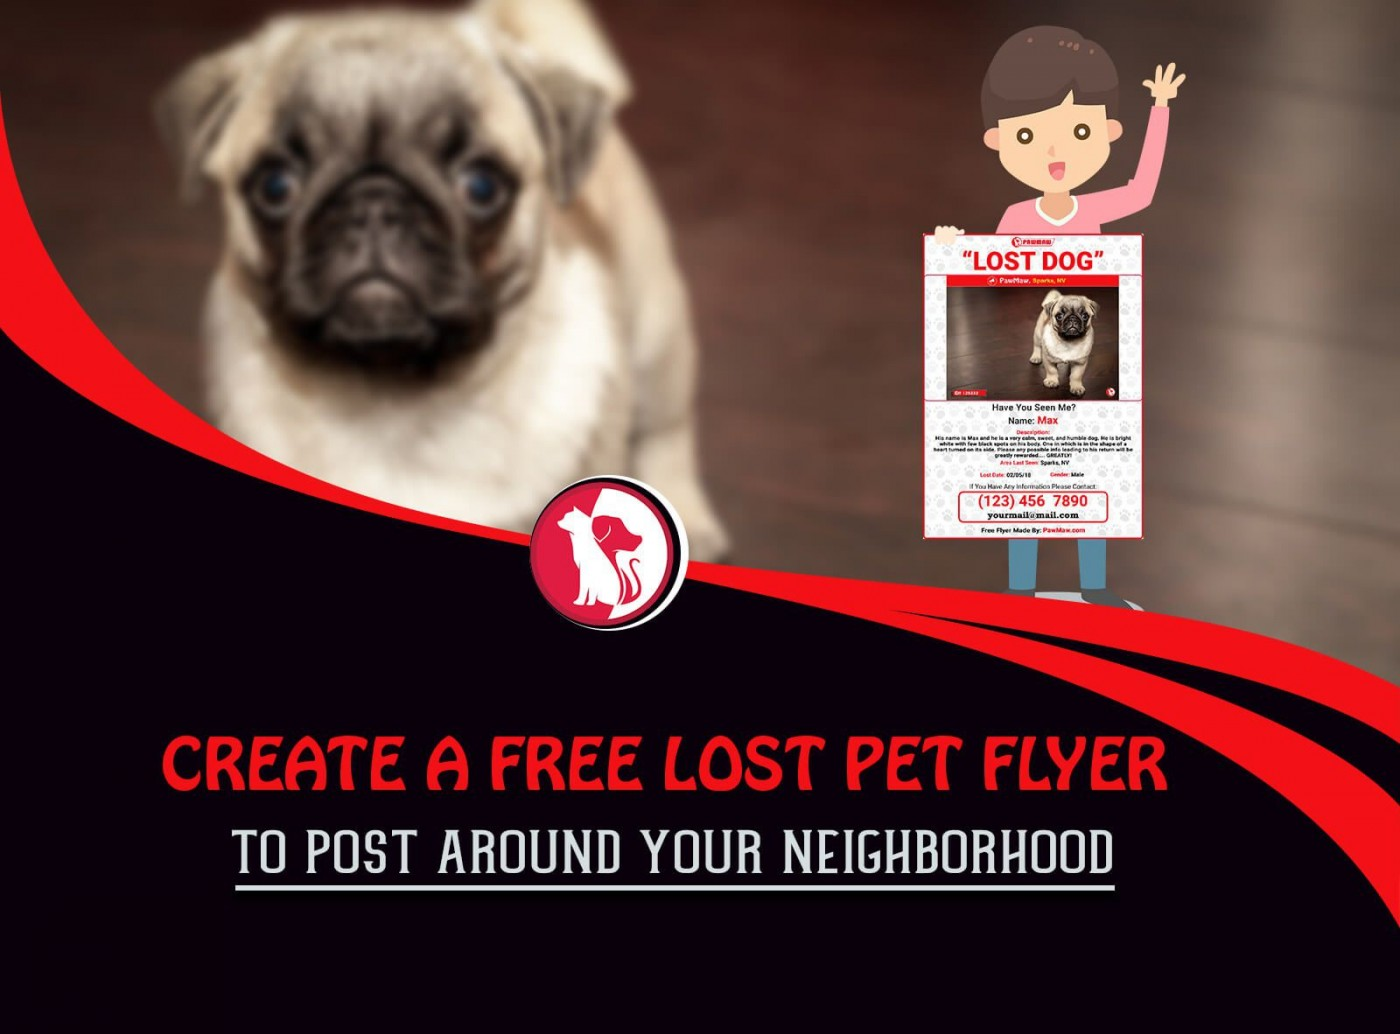 002 Remarkable Lost Dog Flyer Template Concept  Printable Missing Pet1400